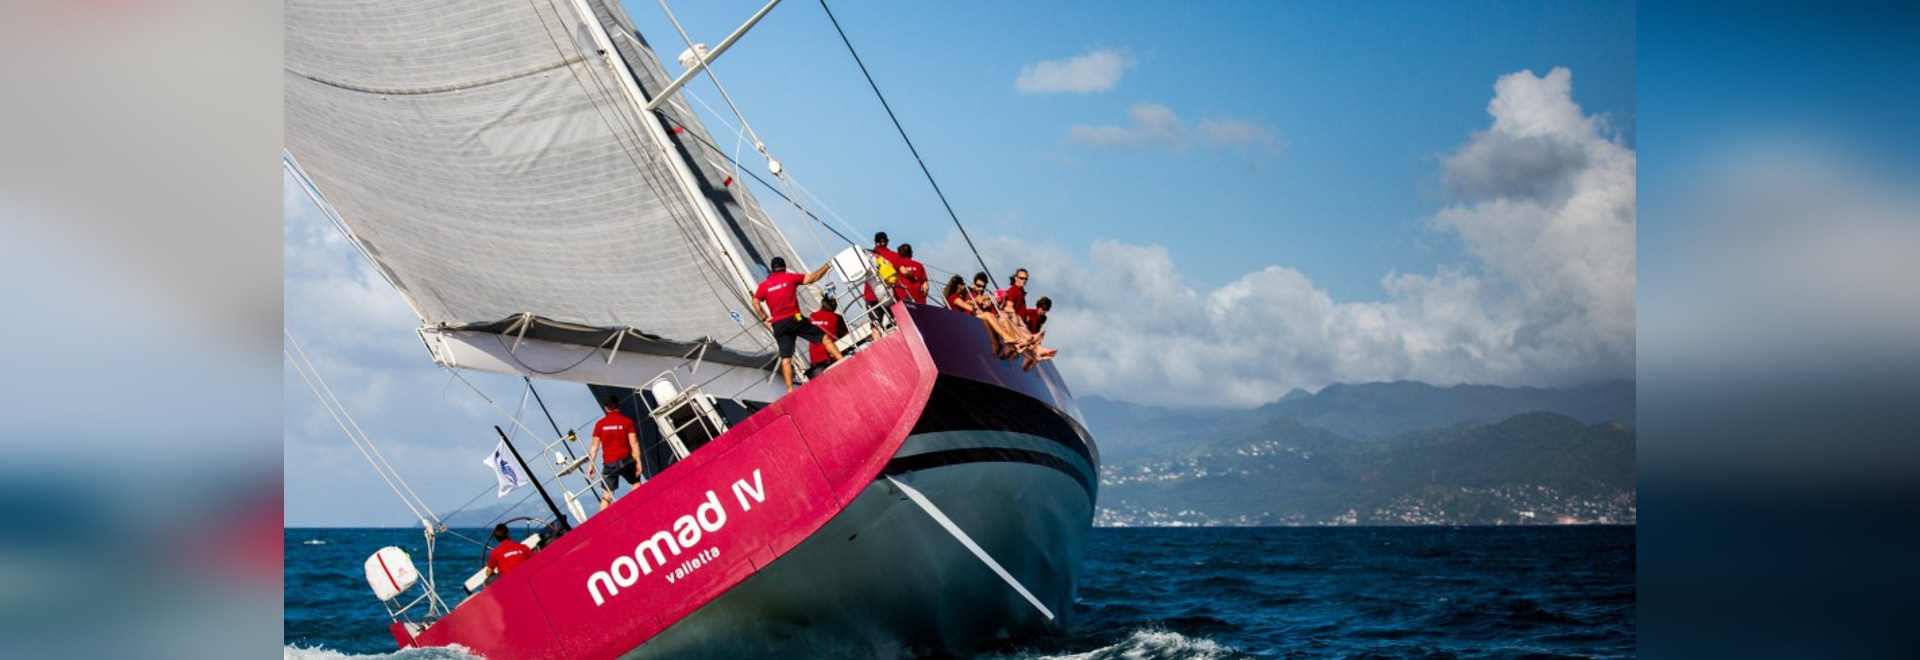 Victory for Nomad IV in RORC in Transatlantic Race